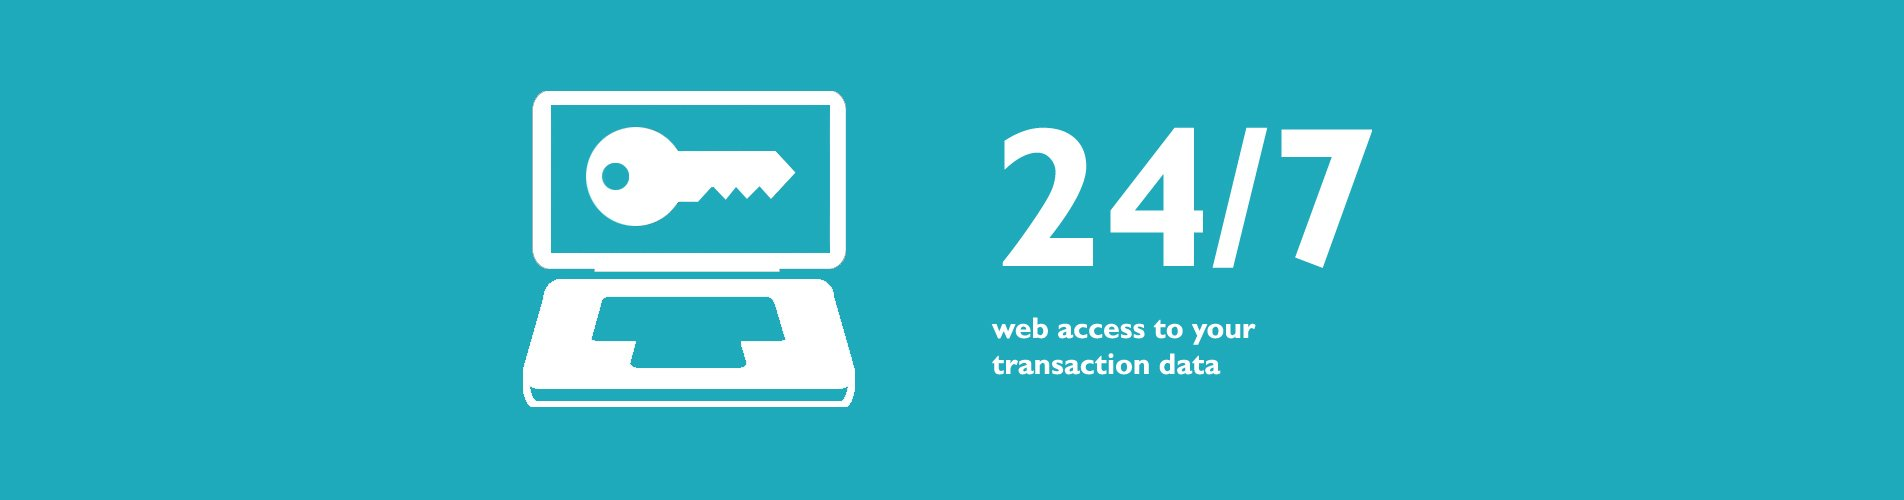 24-7 web access to your transaction data